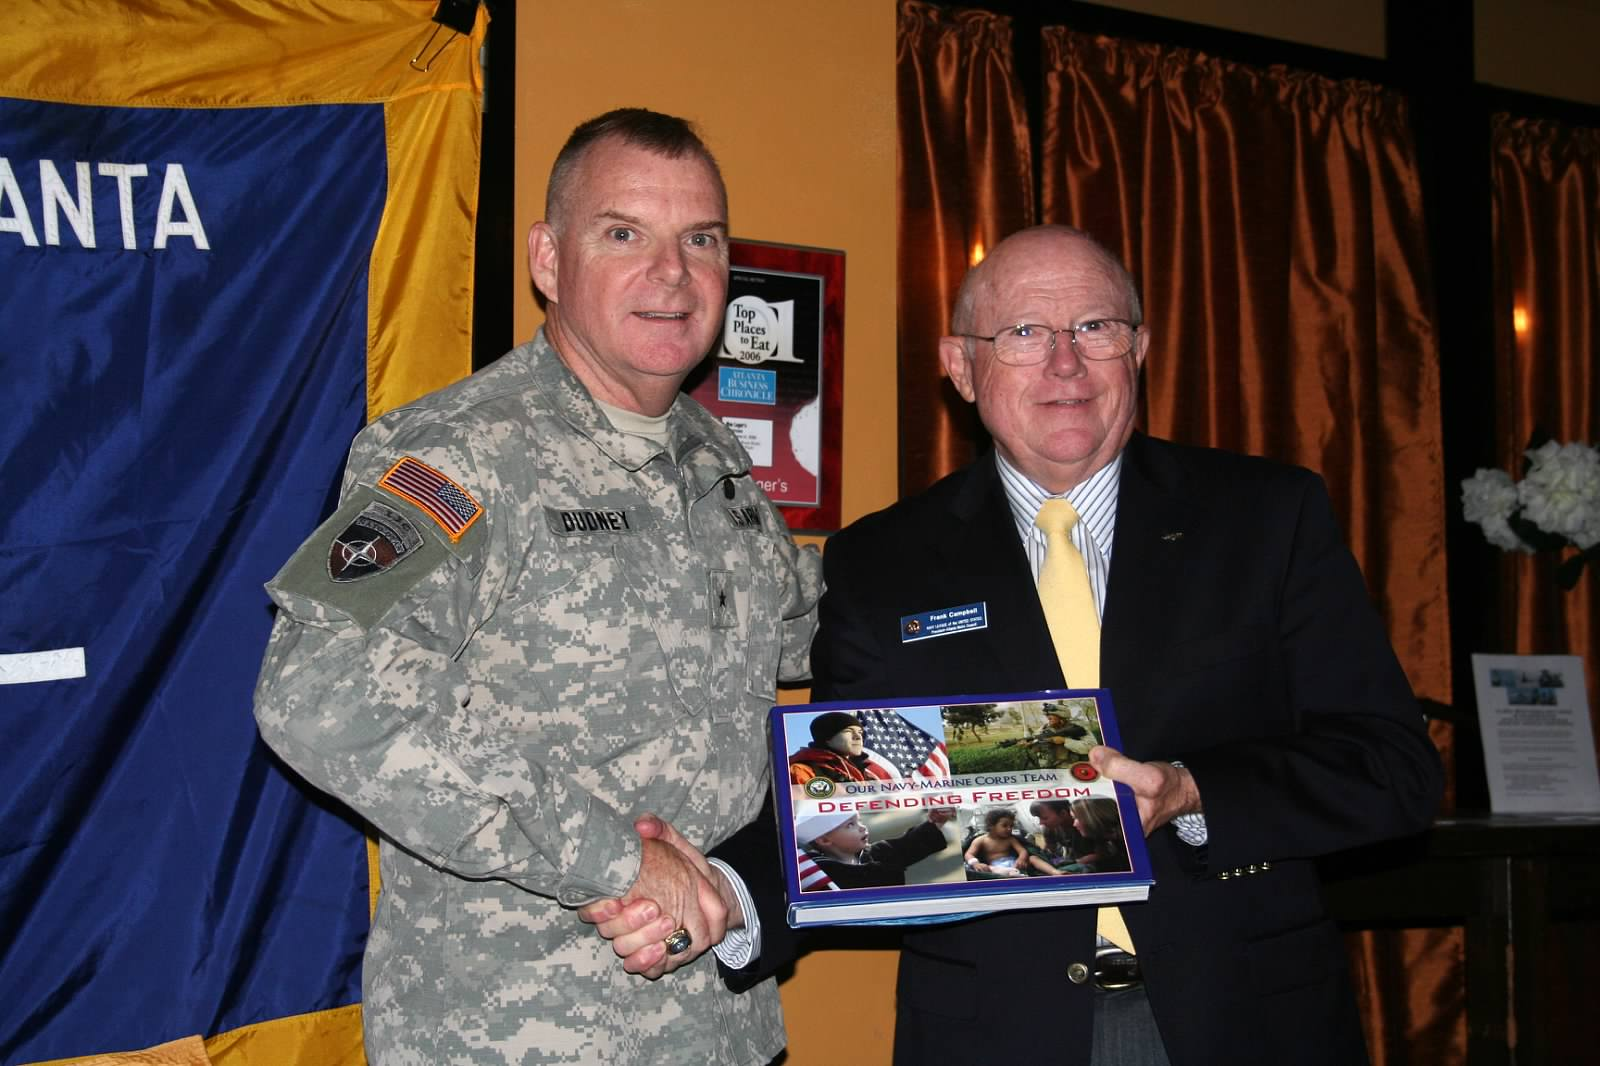 brigadier general lawrence e. dudney, jr. commander of combined joint task force phoenix (Cjtf) fhoenix ix spoke about the role the georgia national guard was playing in afghanistan. council president Frank campbell presented a thank you gift.